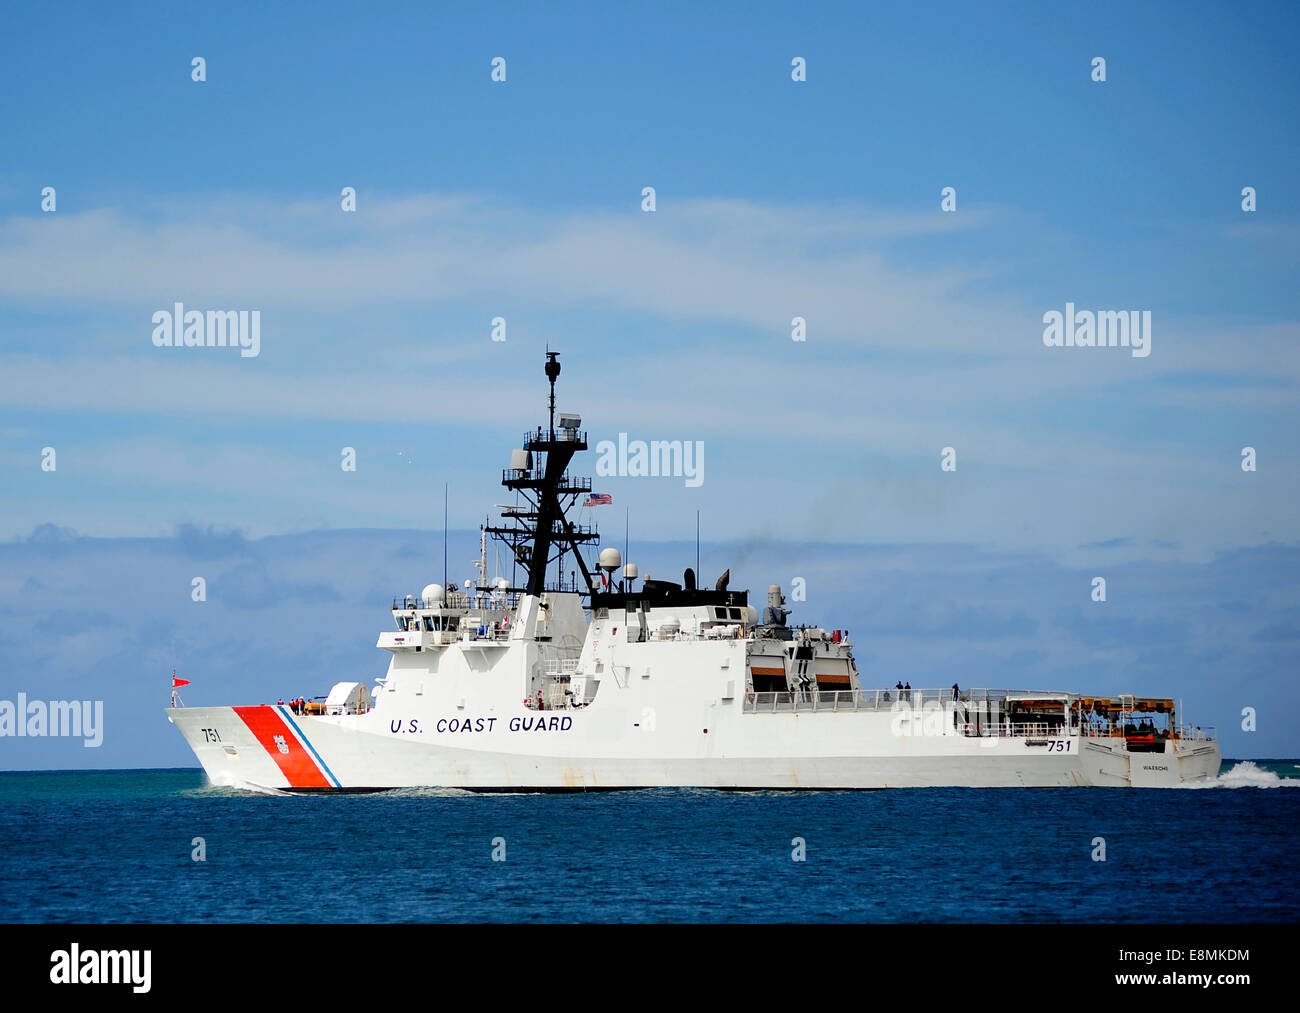 July 9, 2014 - The national security cutter USCGC Waesche (WMSL 751) departs Joint Base Pearl Harbor-Hickam, Hawaii, - Stock Image